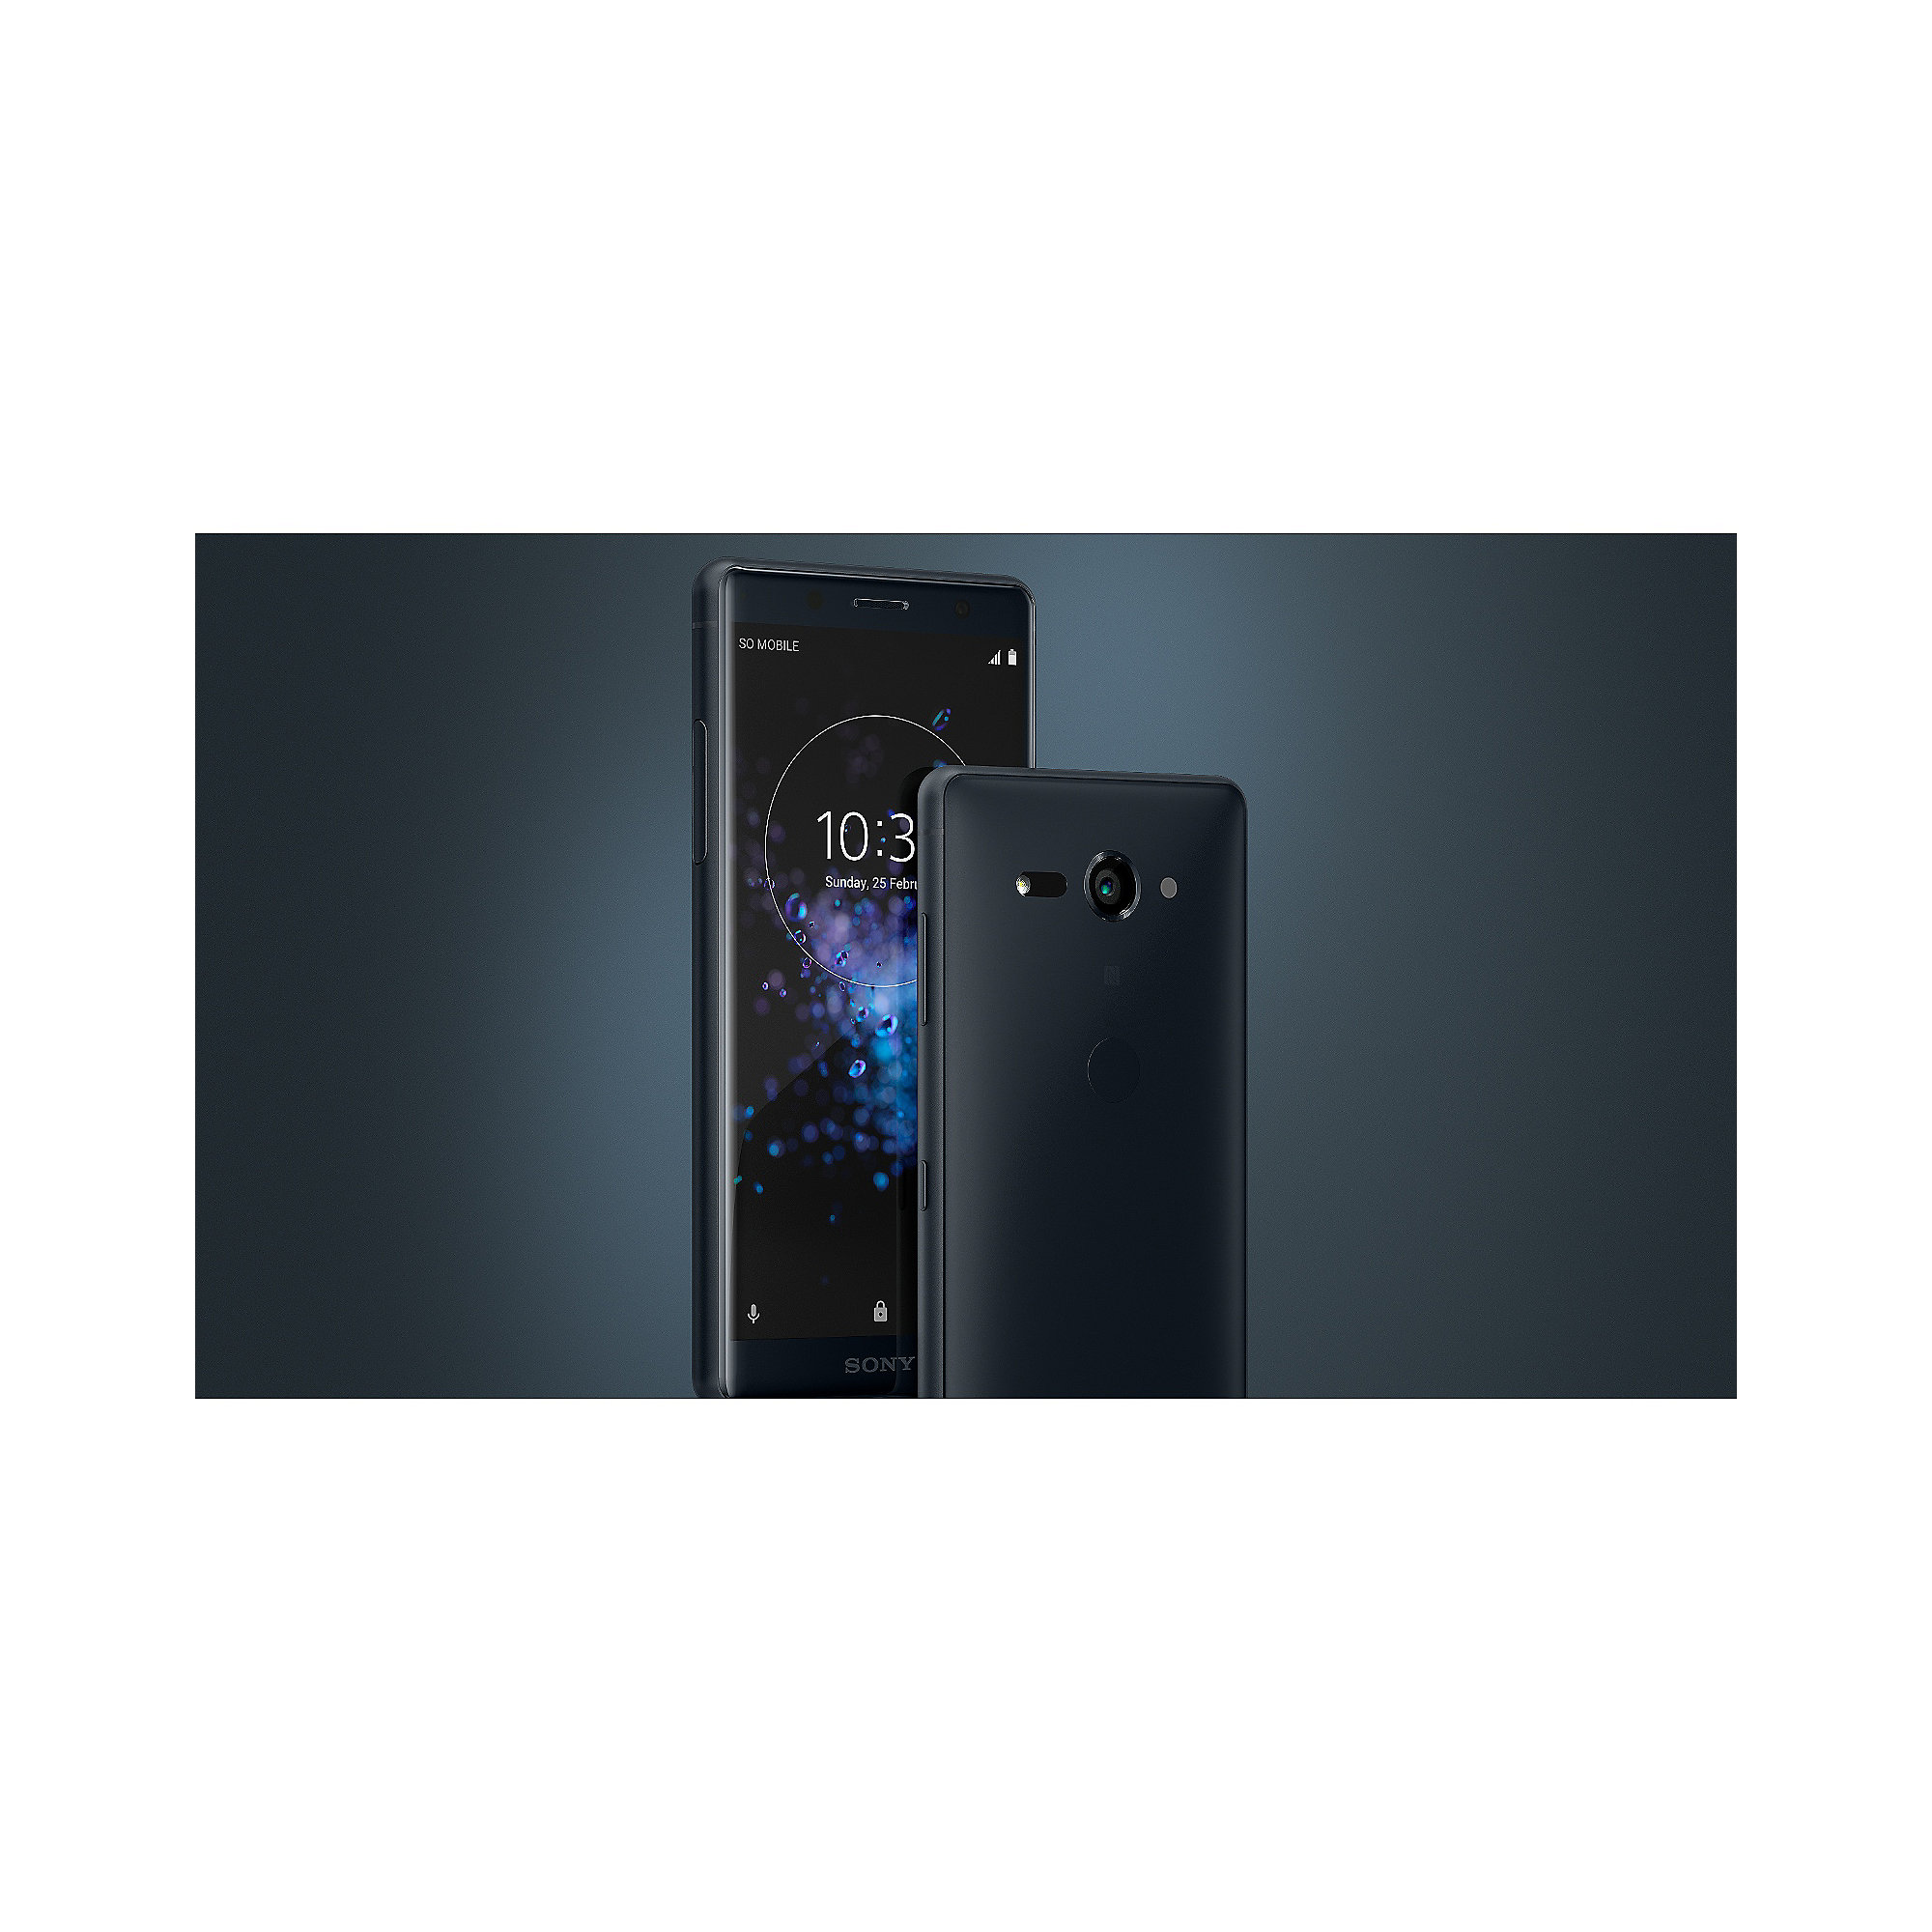 Sony Xperia XZ2 compact black Android 8 Smartphone ++ Cyberport